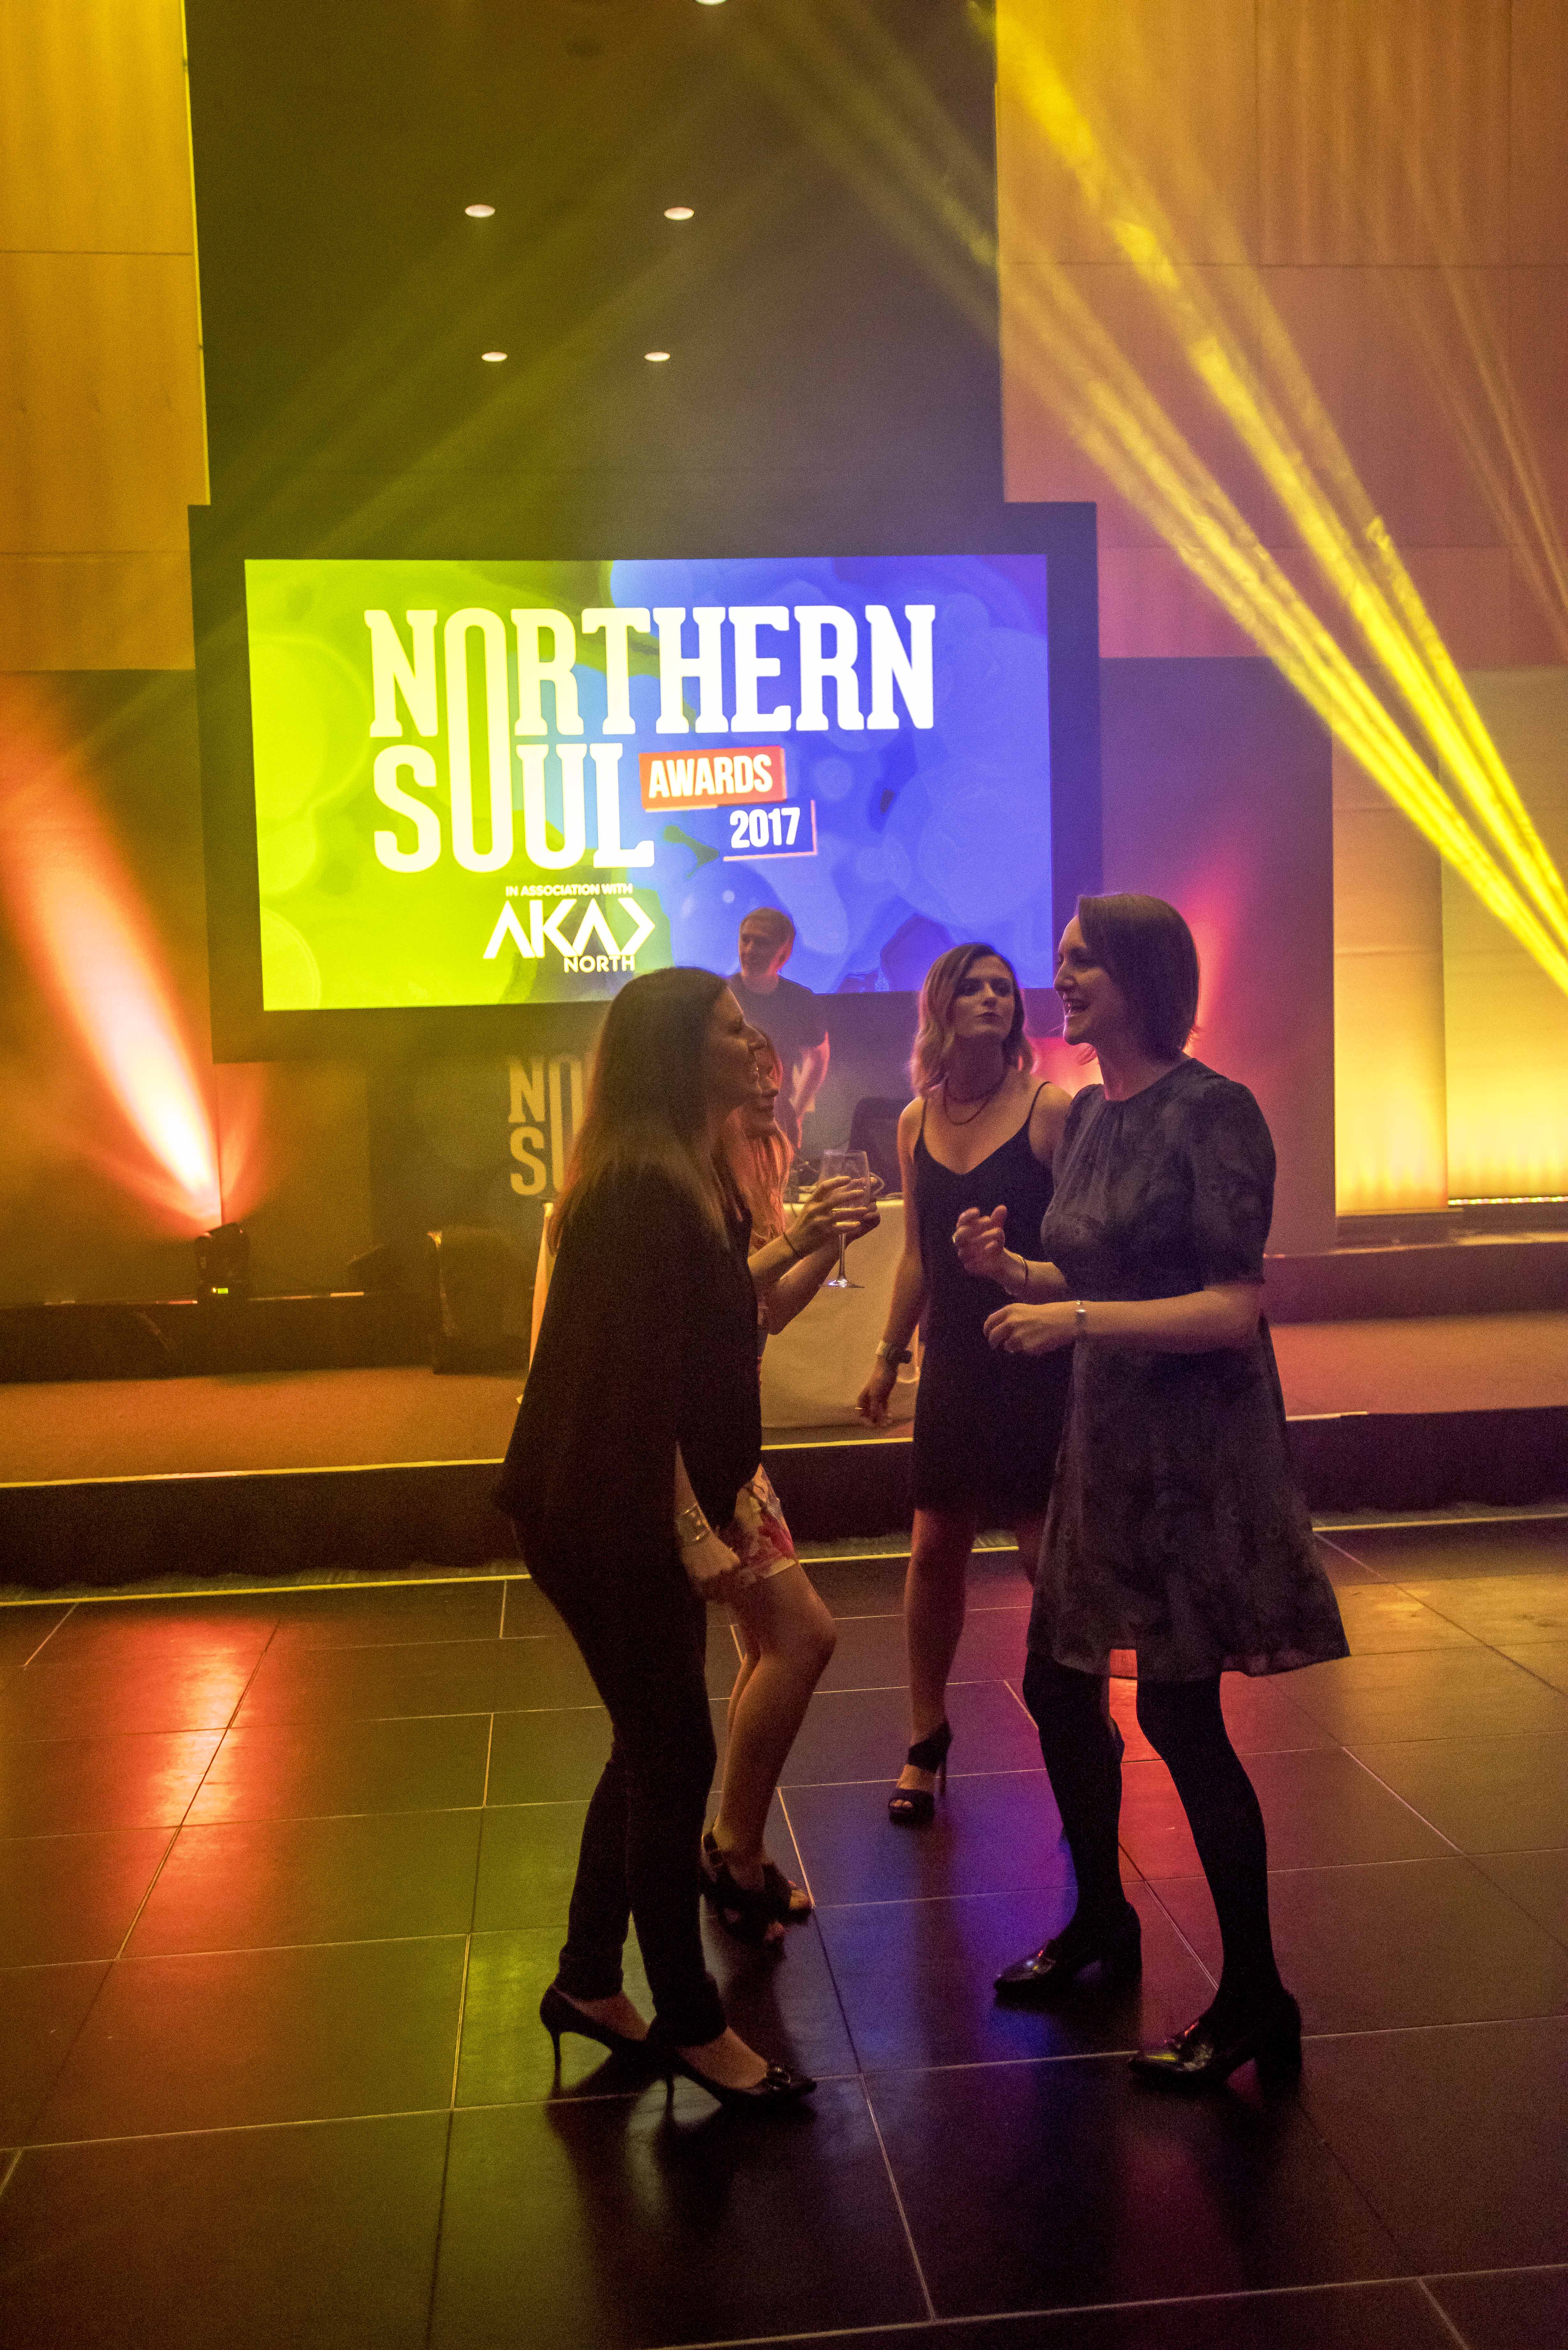 The Northern Soul Awards